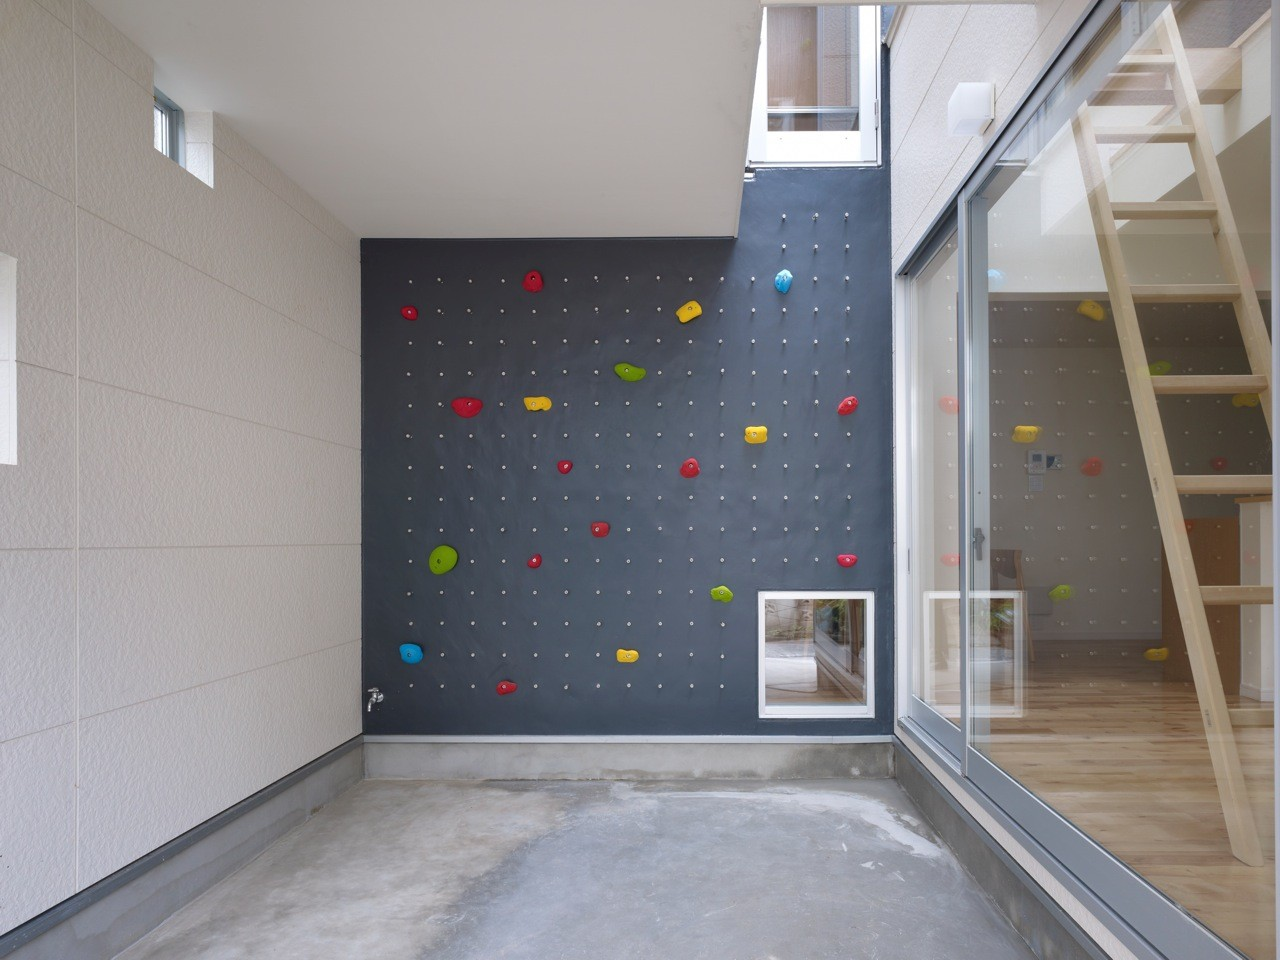 Captivating Climbing Wall 1024x768 22 Awesome Rock Climbing Wall Ideas For Your Home